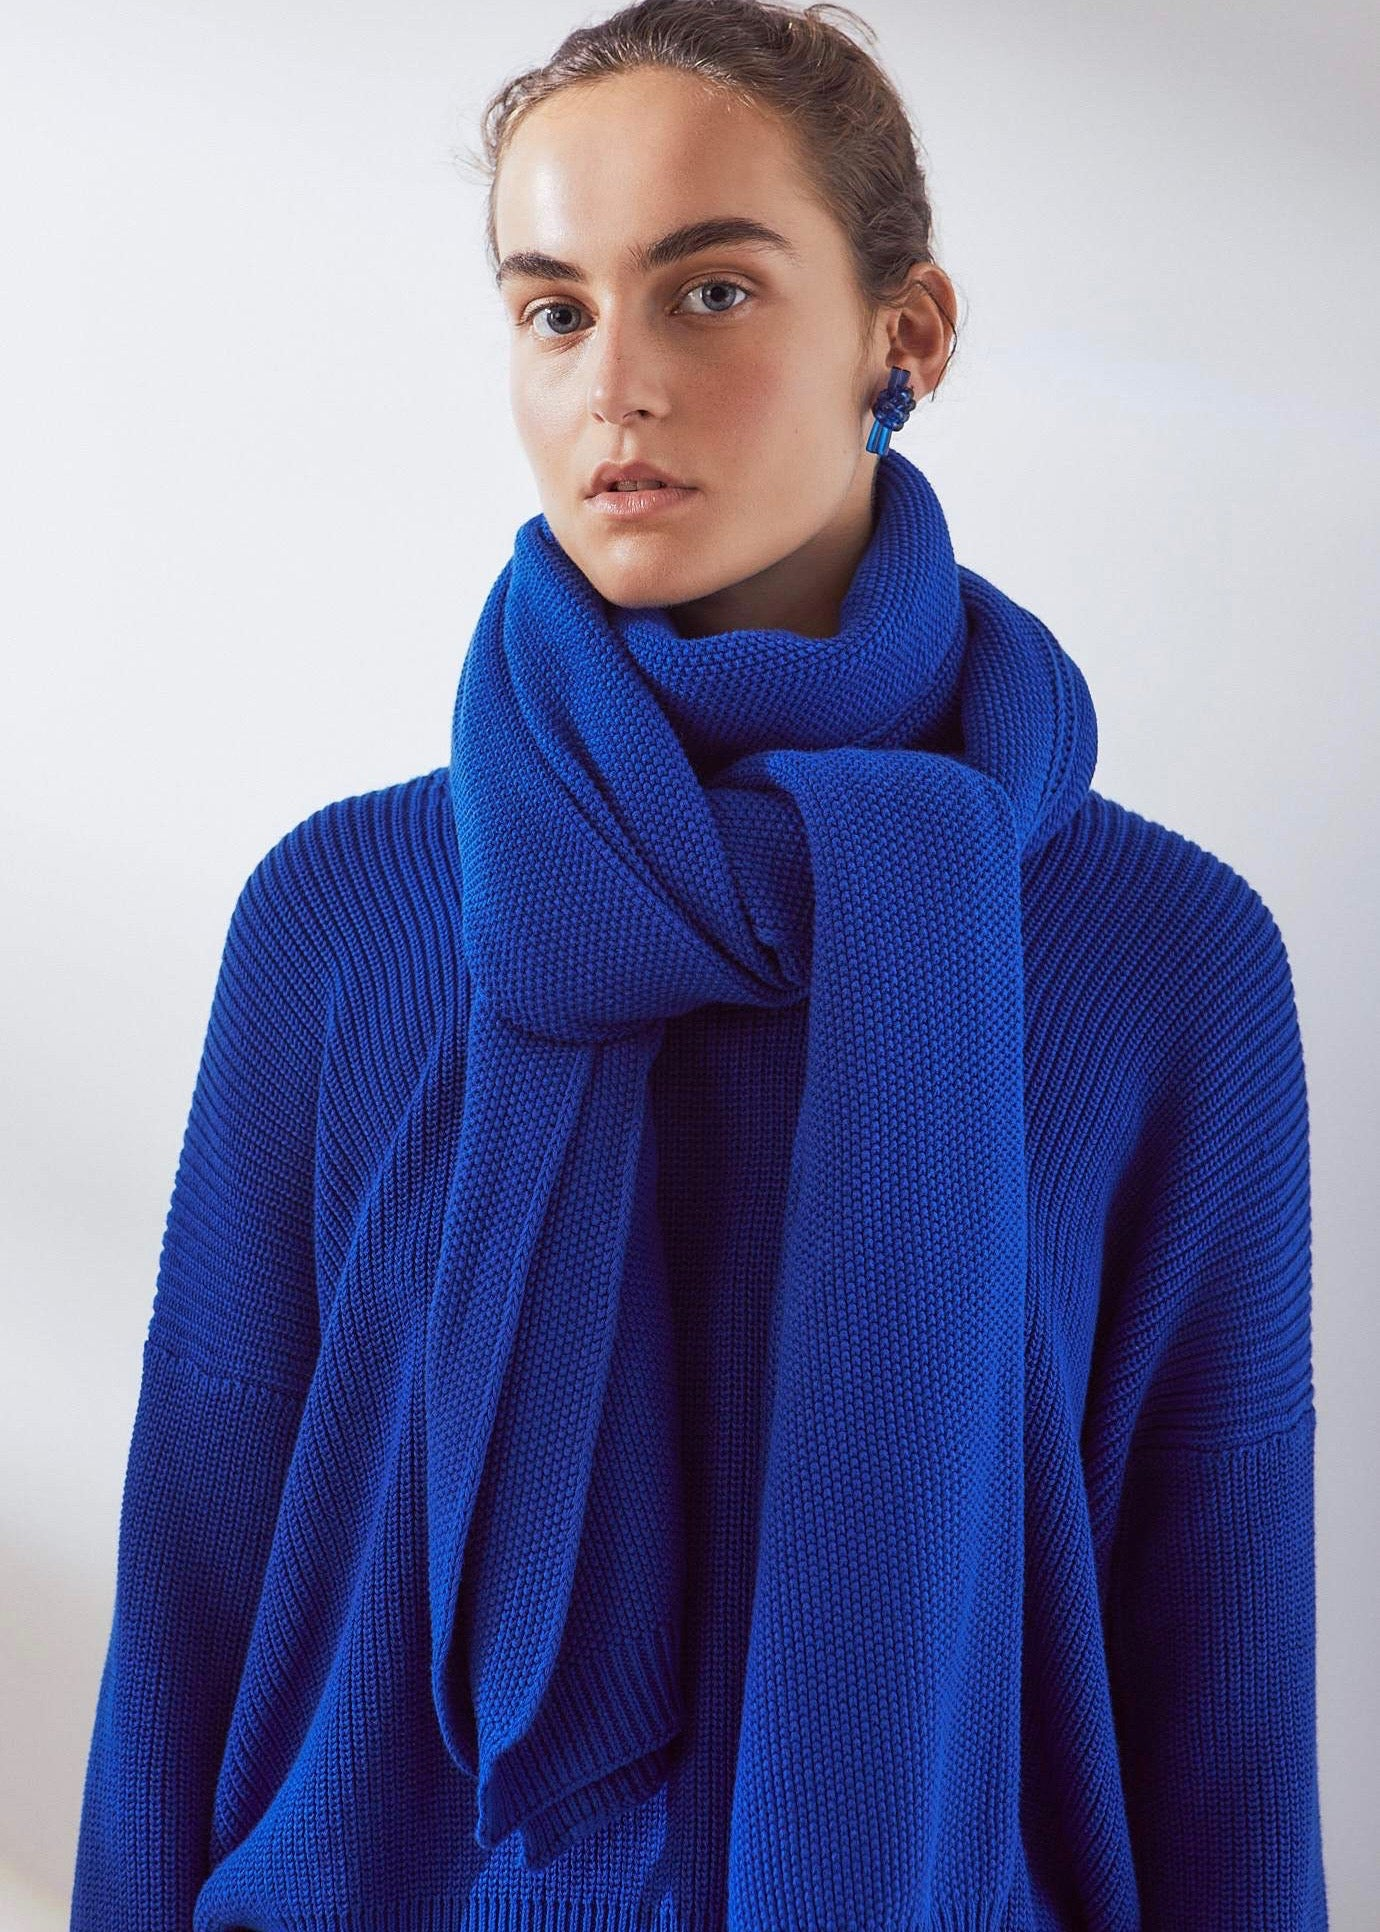 Large cobalt organic cotton scarf | Sustainable & Ethical | Rue Saint Paul